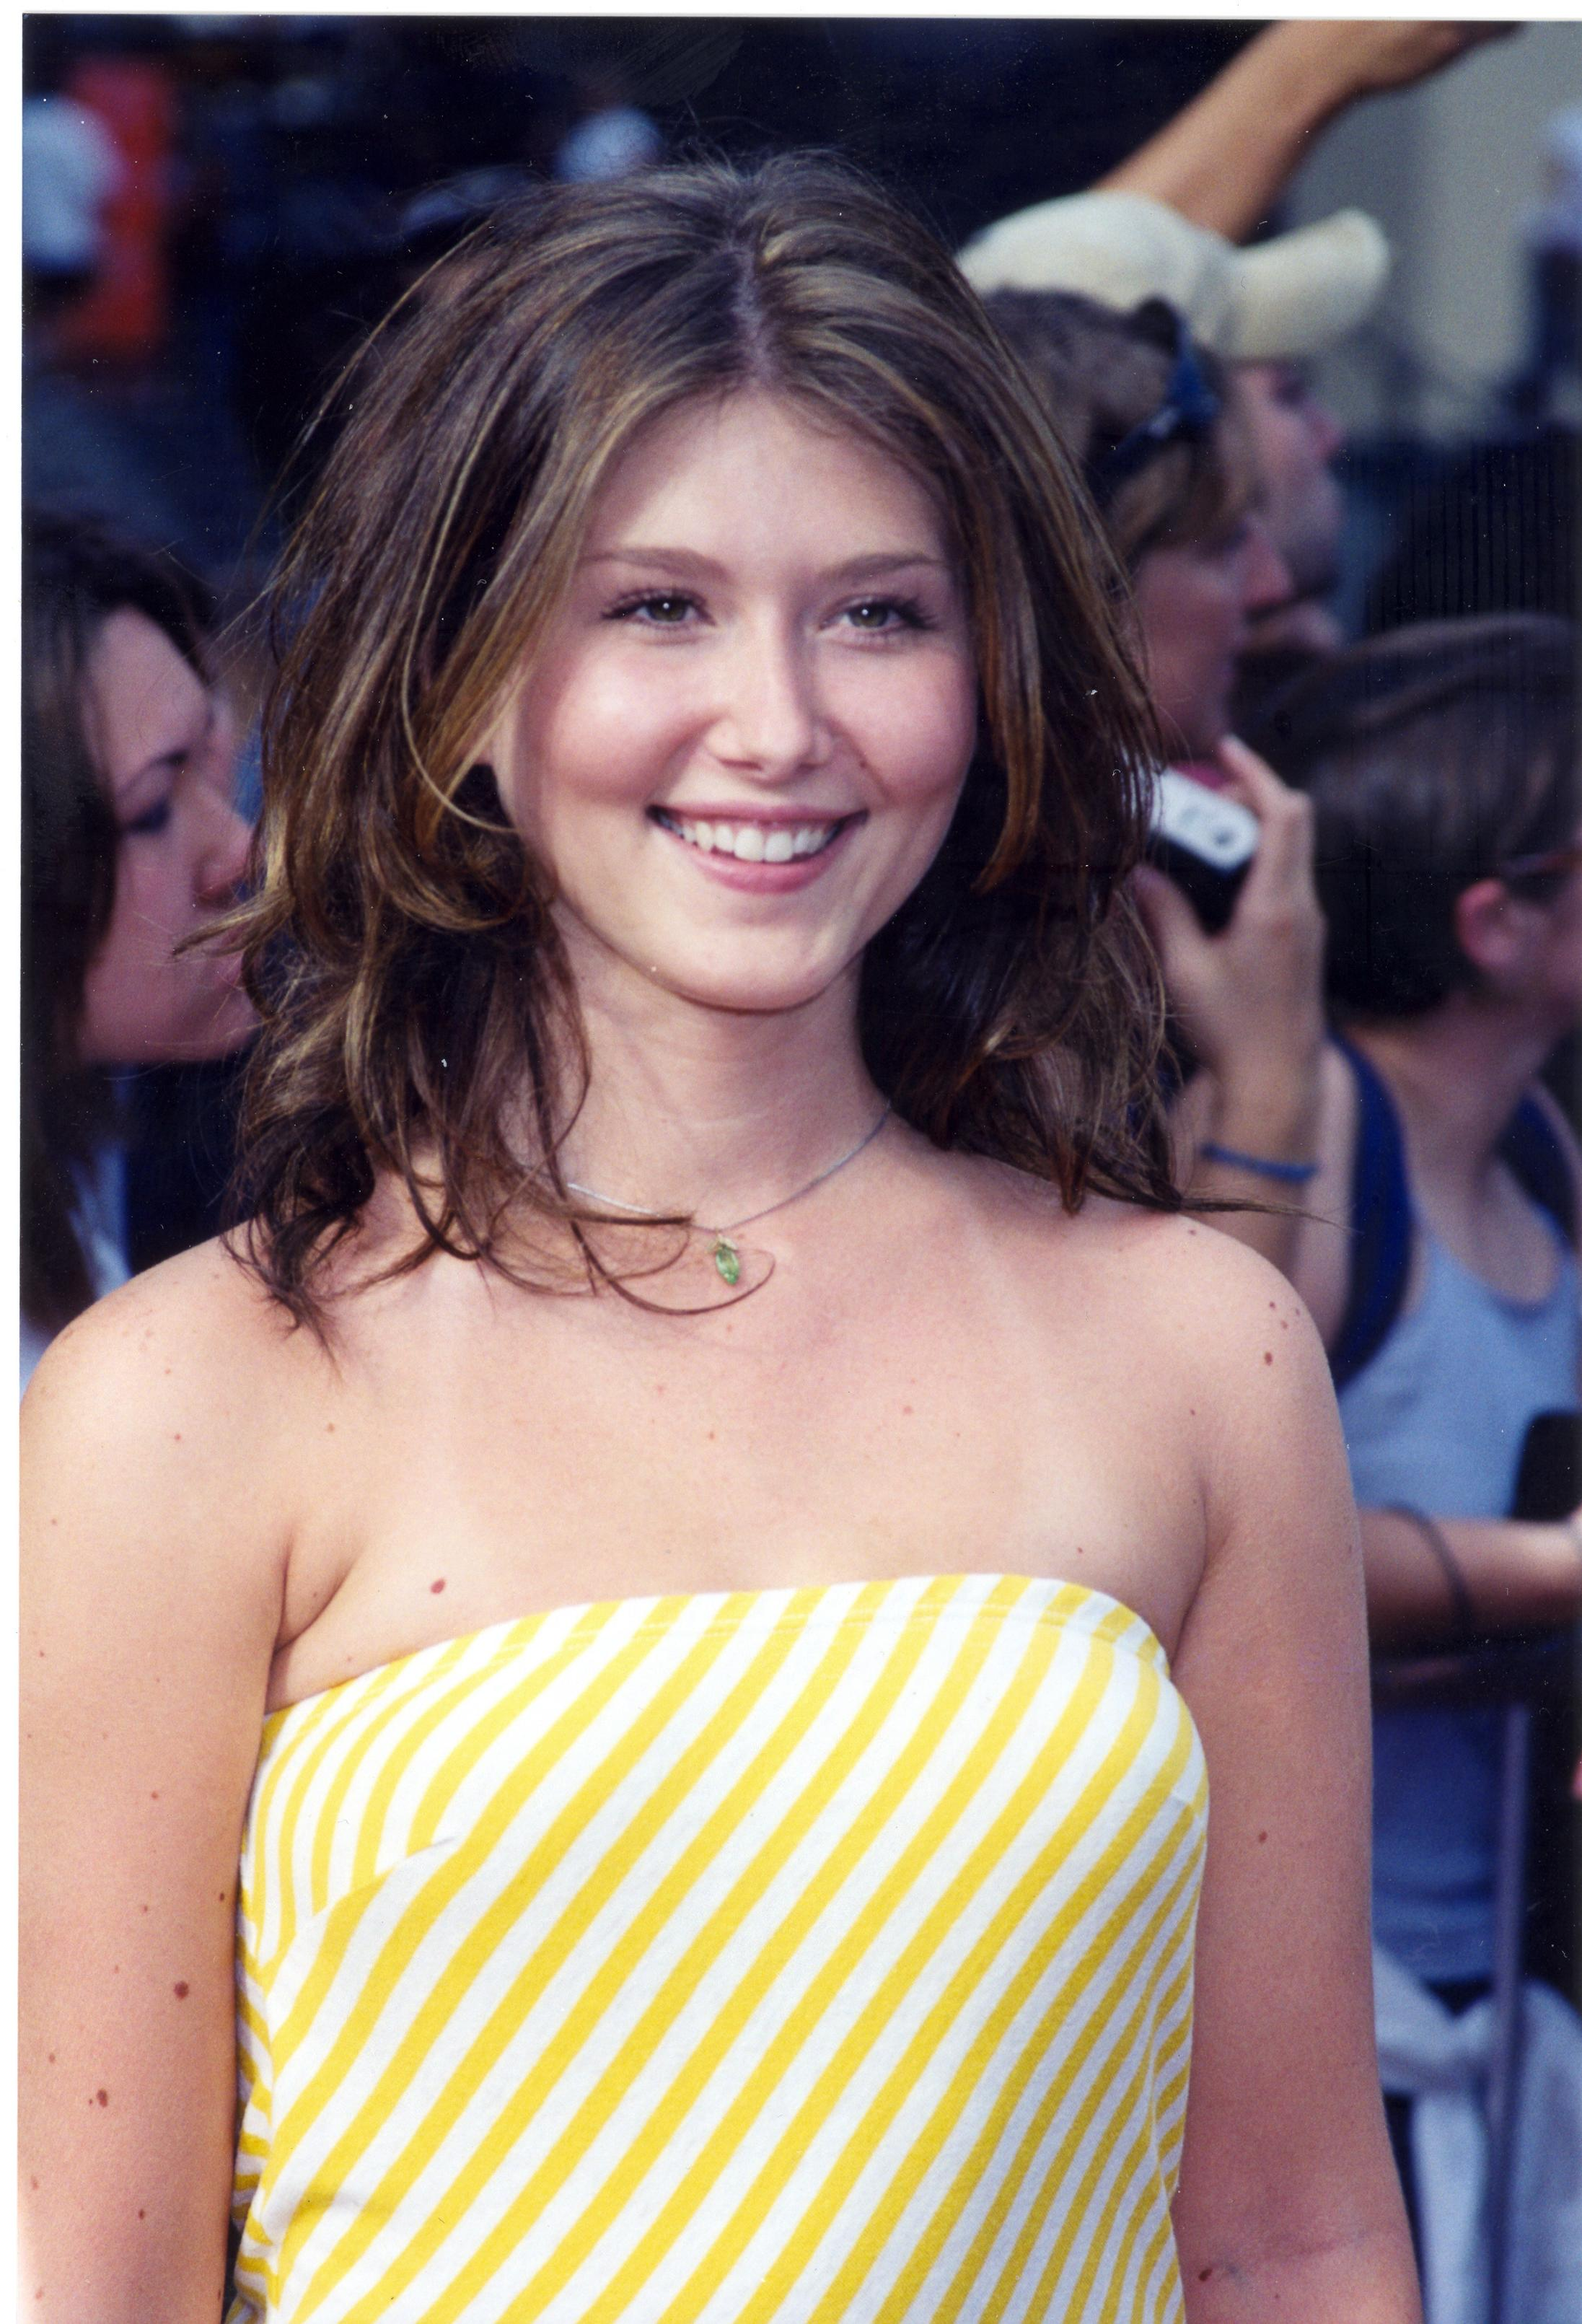 Jewel Staite - Wallpaper